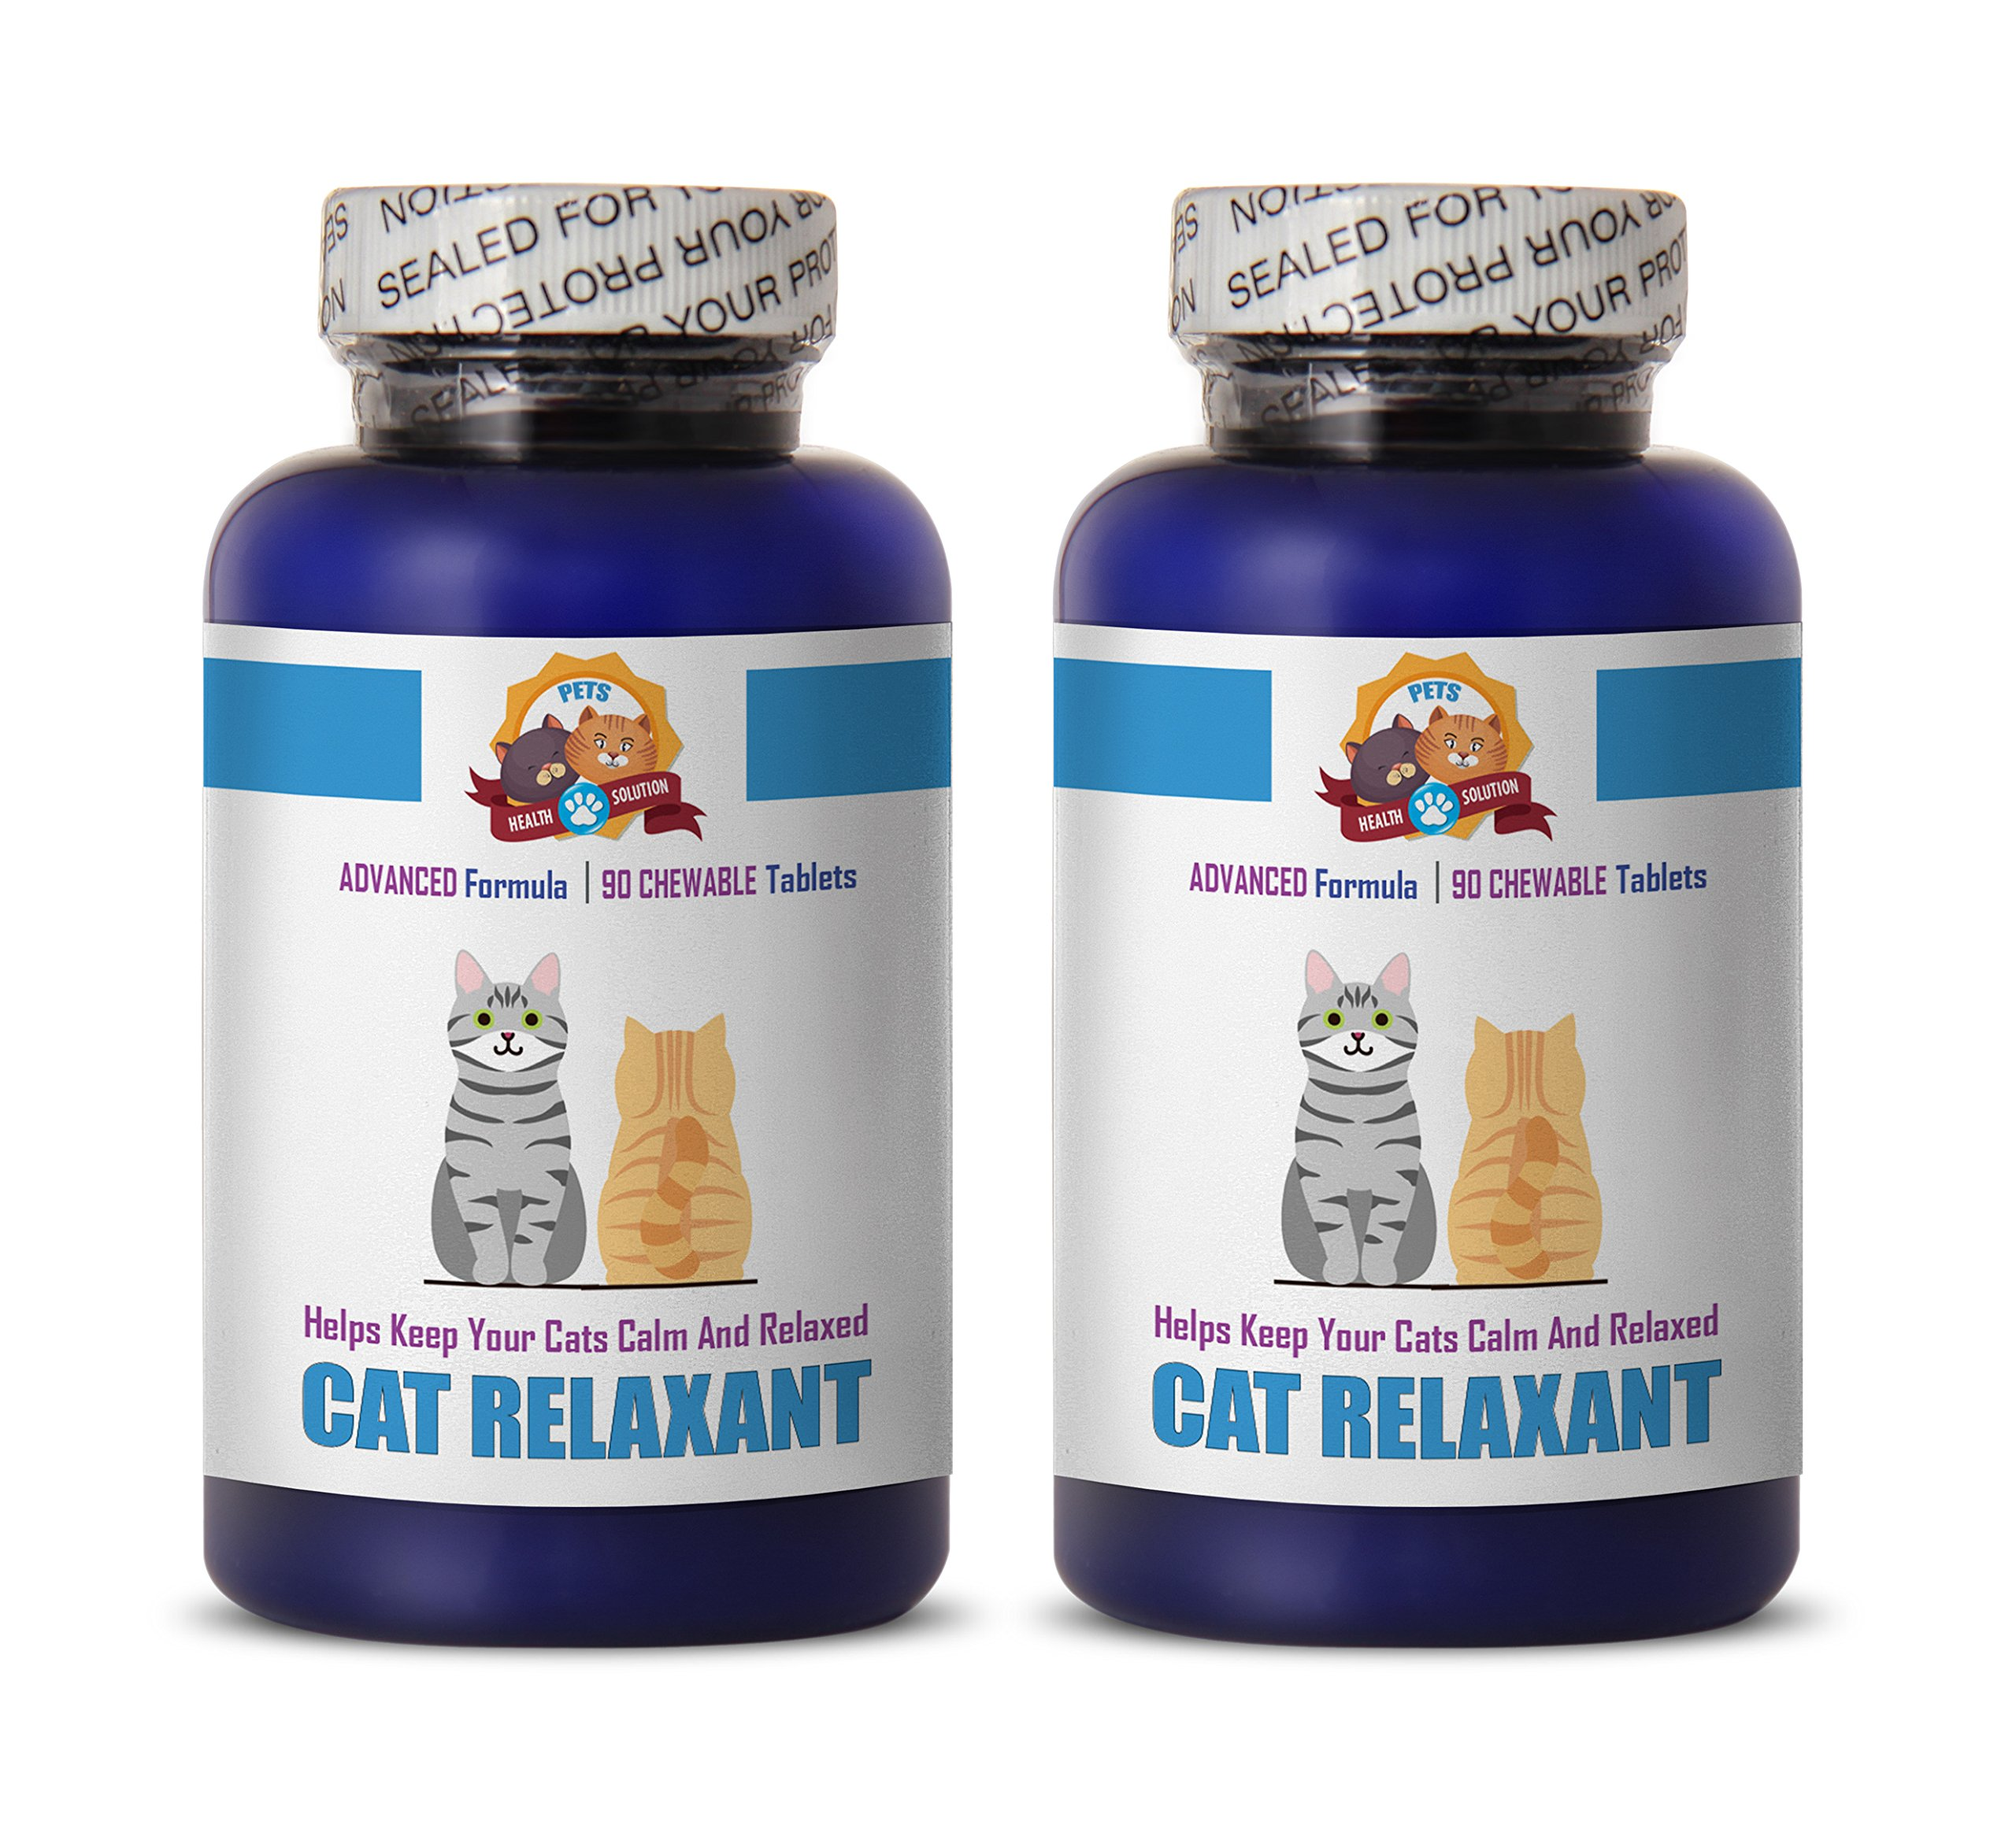 PETS HEALTH SOLUTION cat calming tablets - RELAXANT FOR CATS - HELPS KEEP CALM - ANXIETY RELIEF - TREATS - calming cat treats - 180 Treats (2 Bottle) by PETS HEALTH SOLUTION